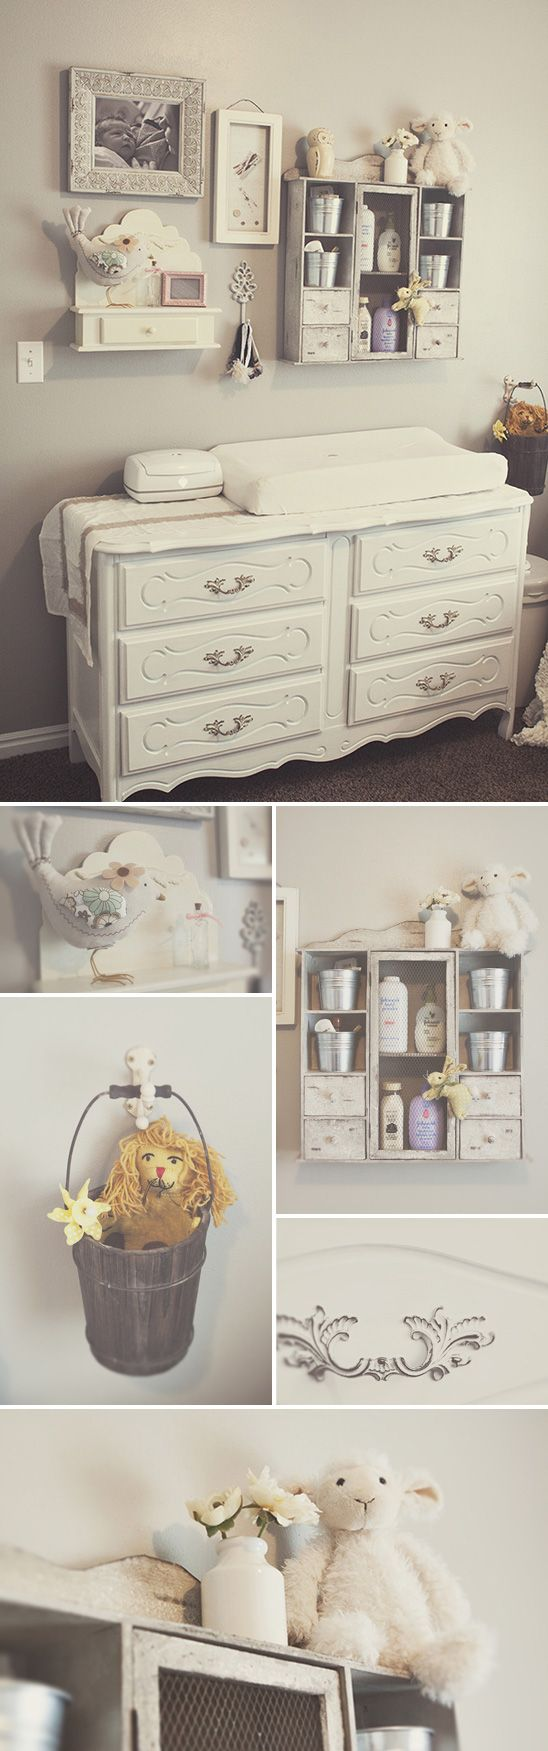 I love the idea of shelving on the wall over the dresser to hold changing equipment. Having buckets to hold the small things you don't use as often or for pacifiers is a cute idea.